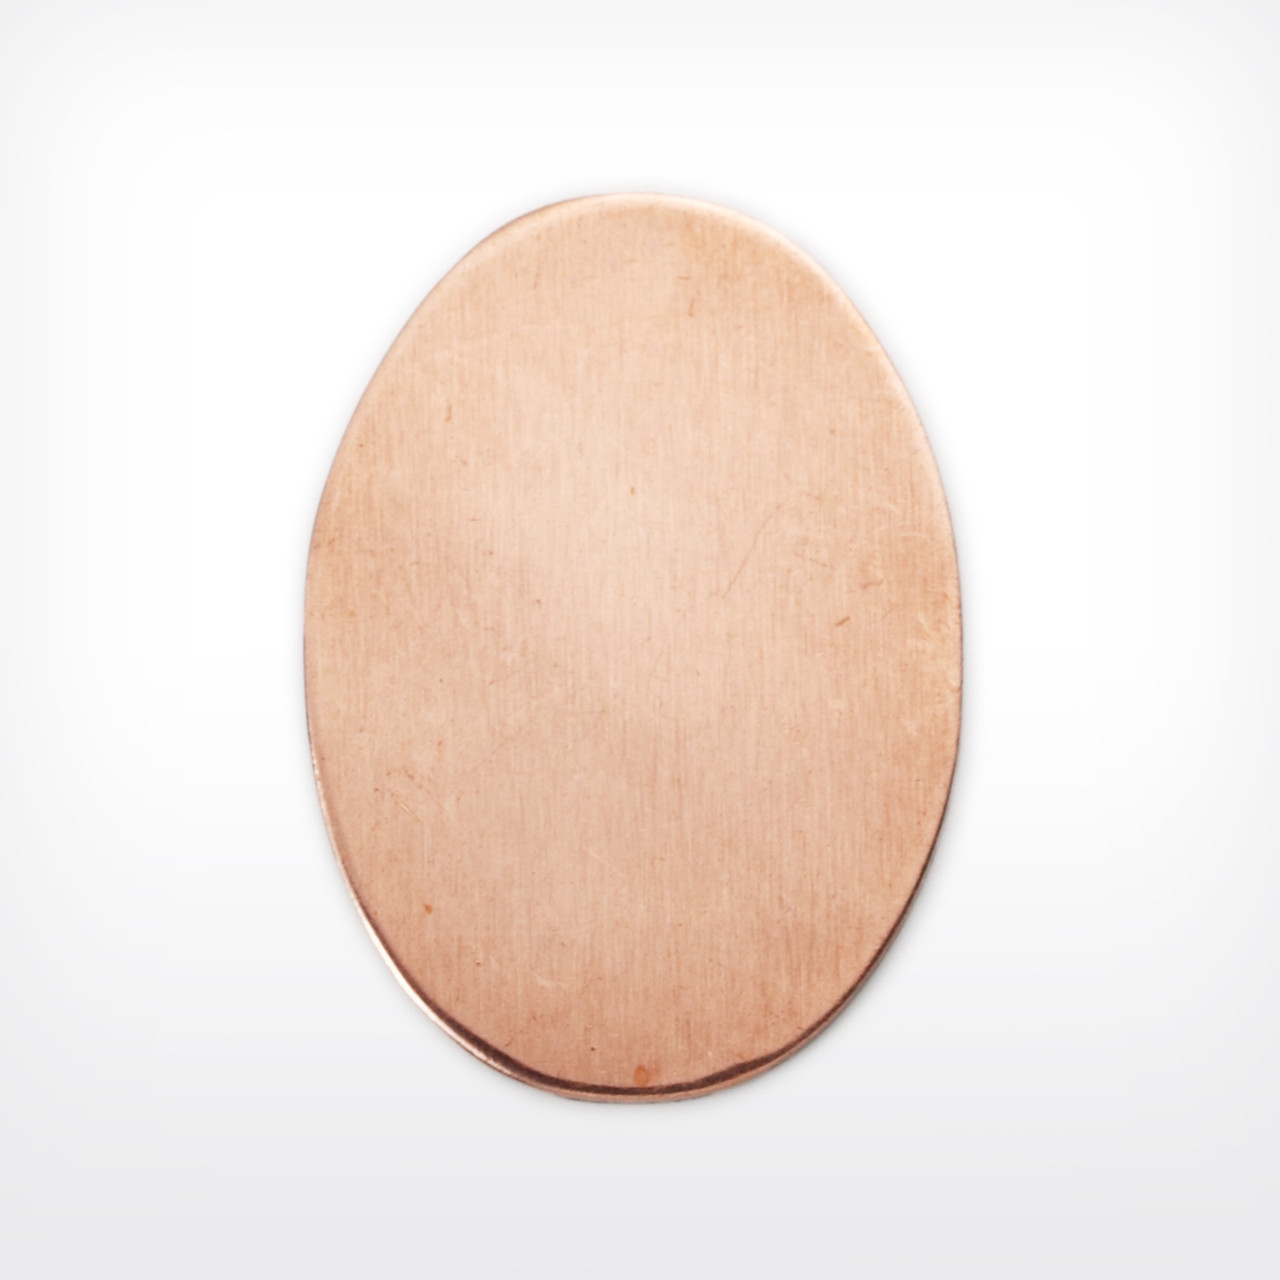 Copper Oval, 30x22mm - Pack of 10 (706-CU)